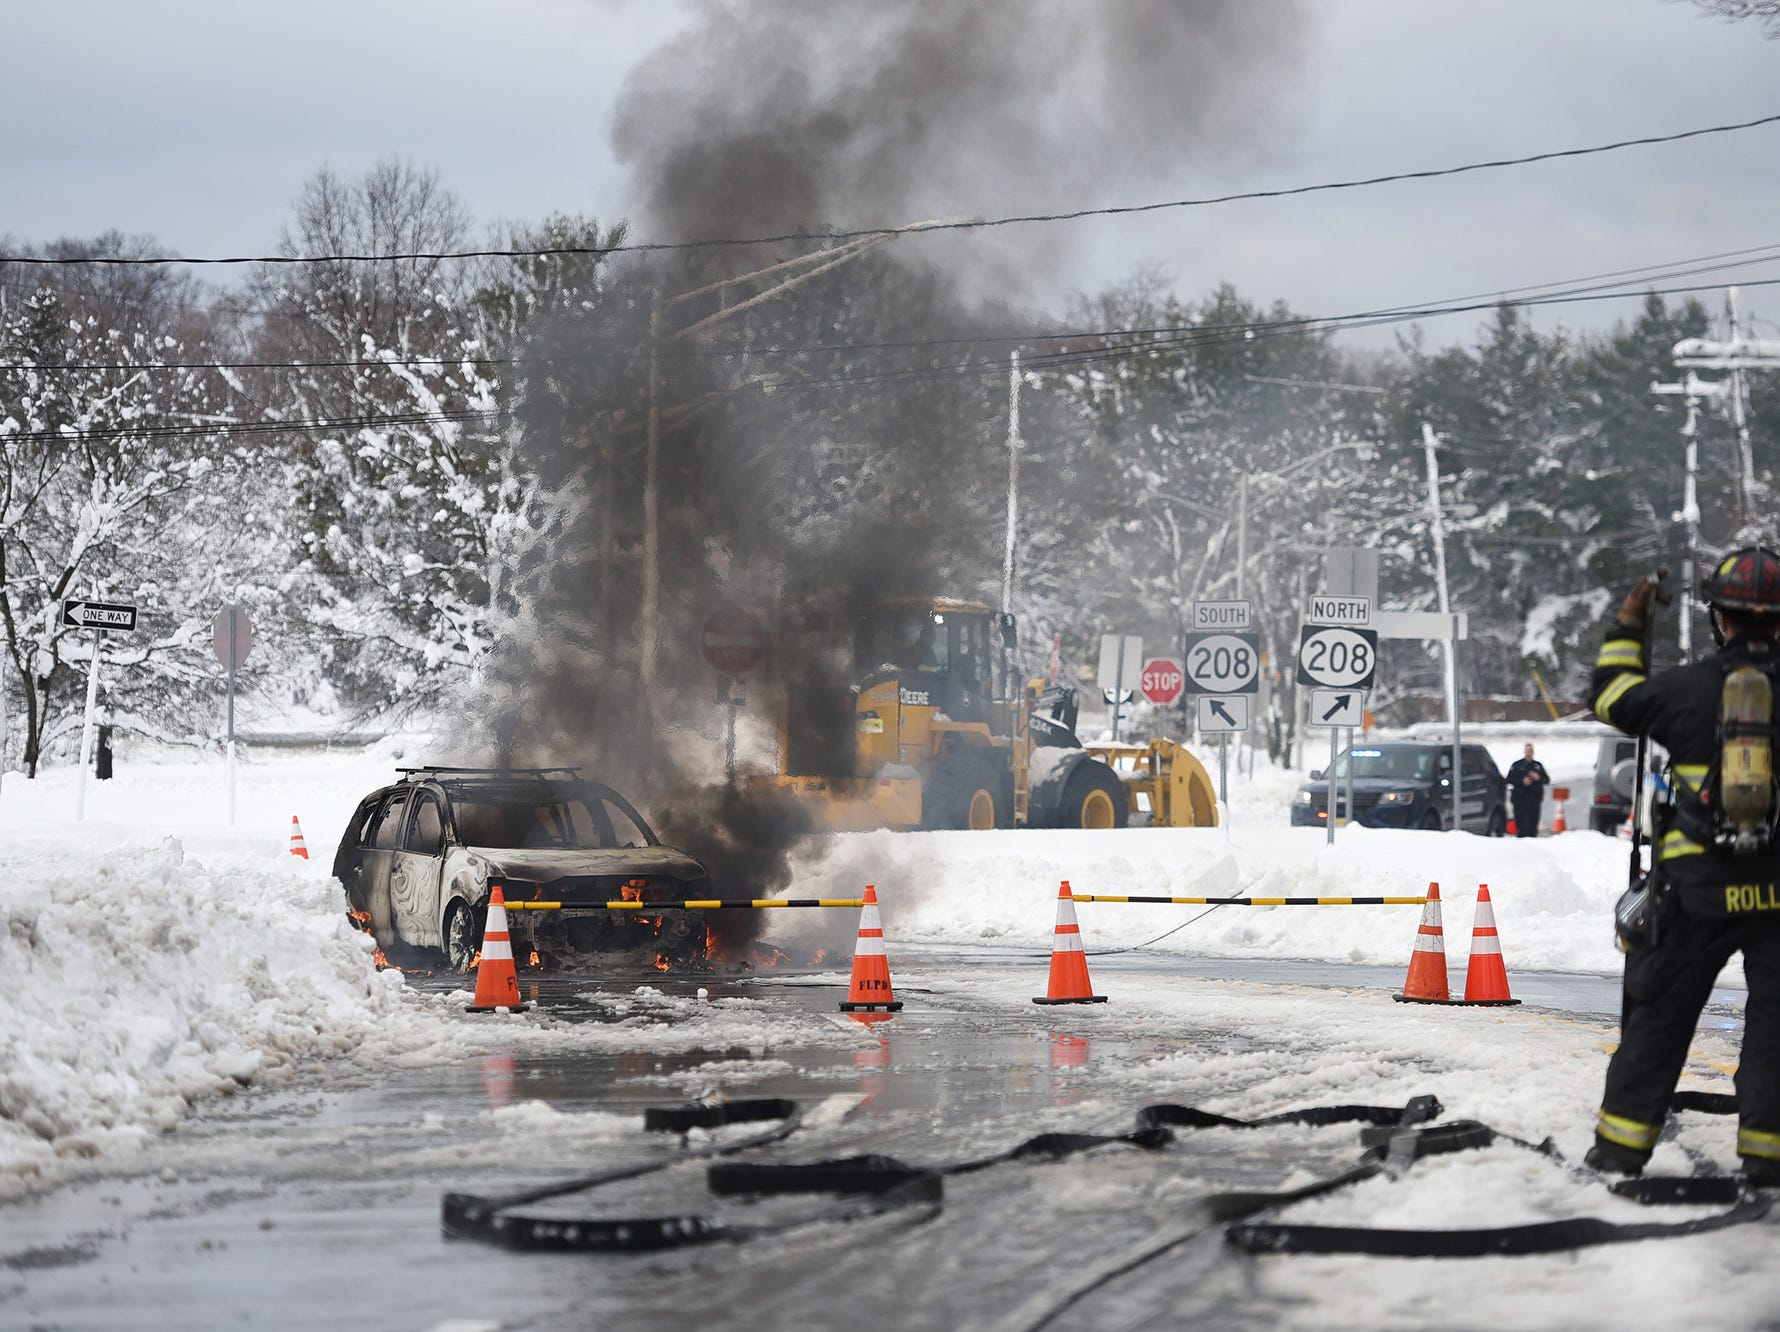 Firefighters stand guard as a car is on fire after electric power line came down on the car, photographed on Summit Ave. near Rt.208 in Franklin Lakes on 03/08/18. No further information is available at this point.